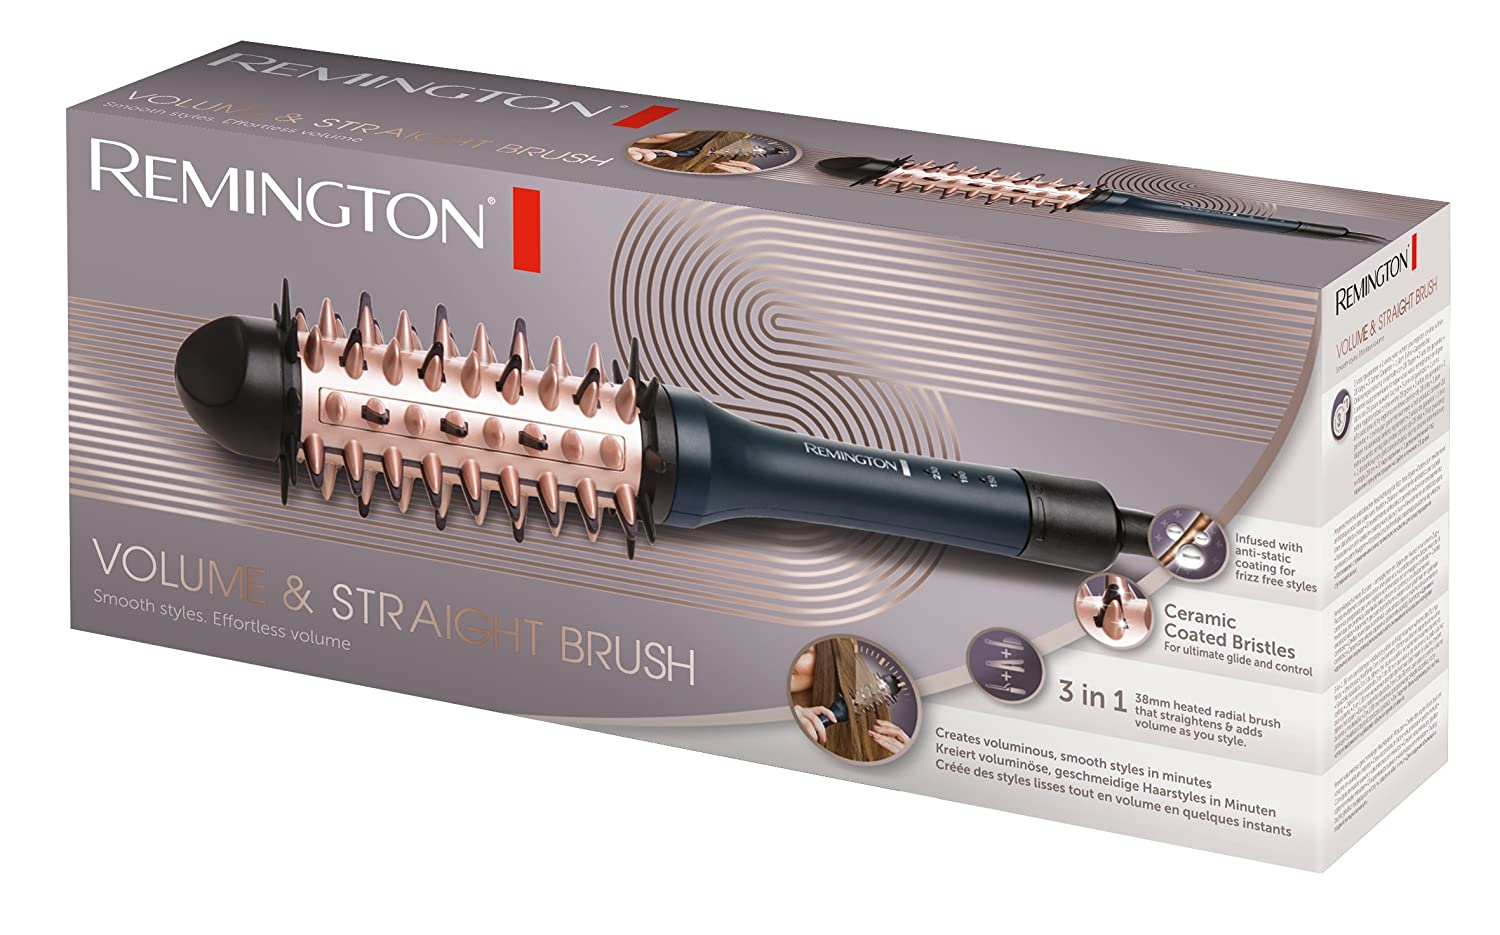 Remington CB7A138 - Volume & Straight Brush, cepillo alisador: Amazon.es: Salud y cuidado personal